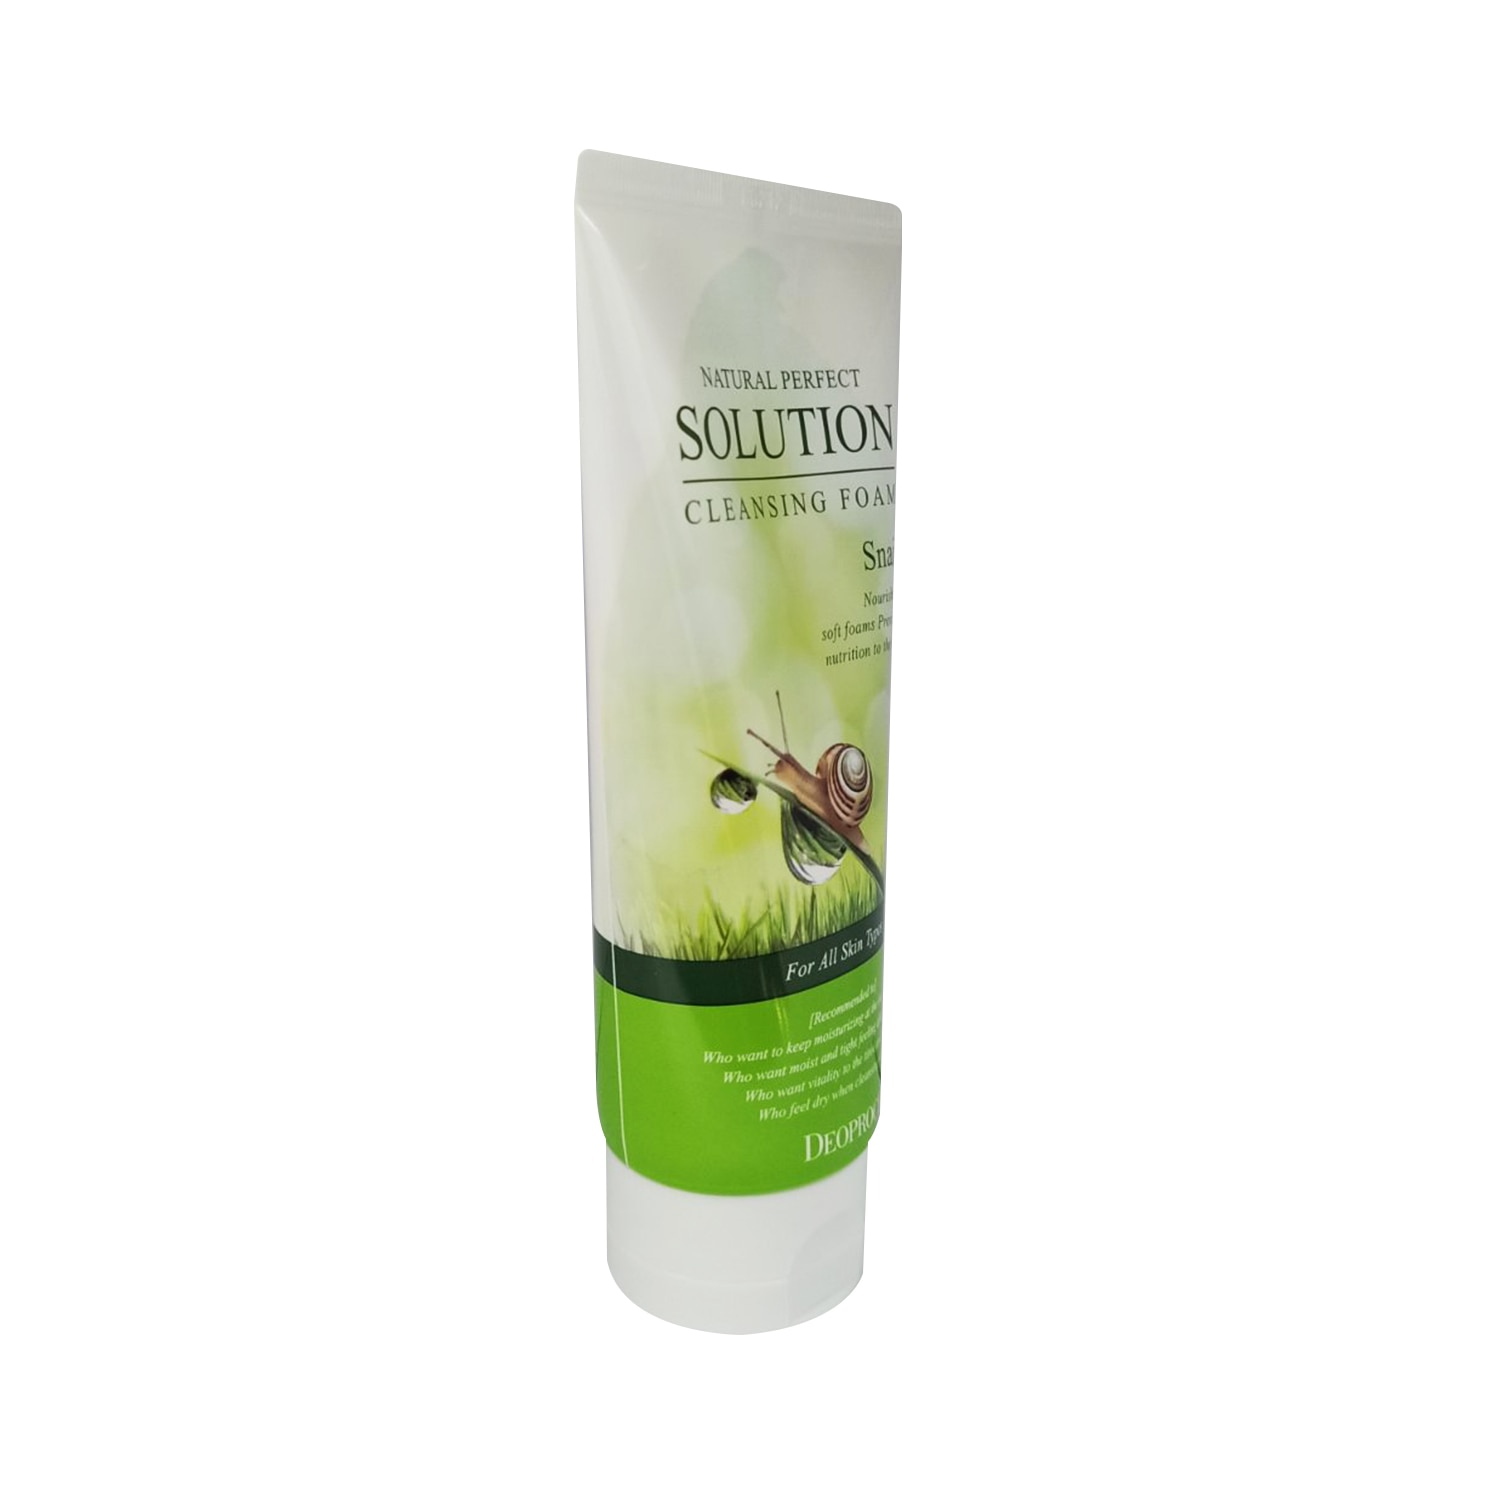 DEOPROCEDEOPROCE Natural Perfect Solution Cleansing Foam Snail 170g,For WomenKBeauty